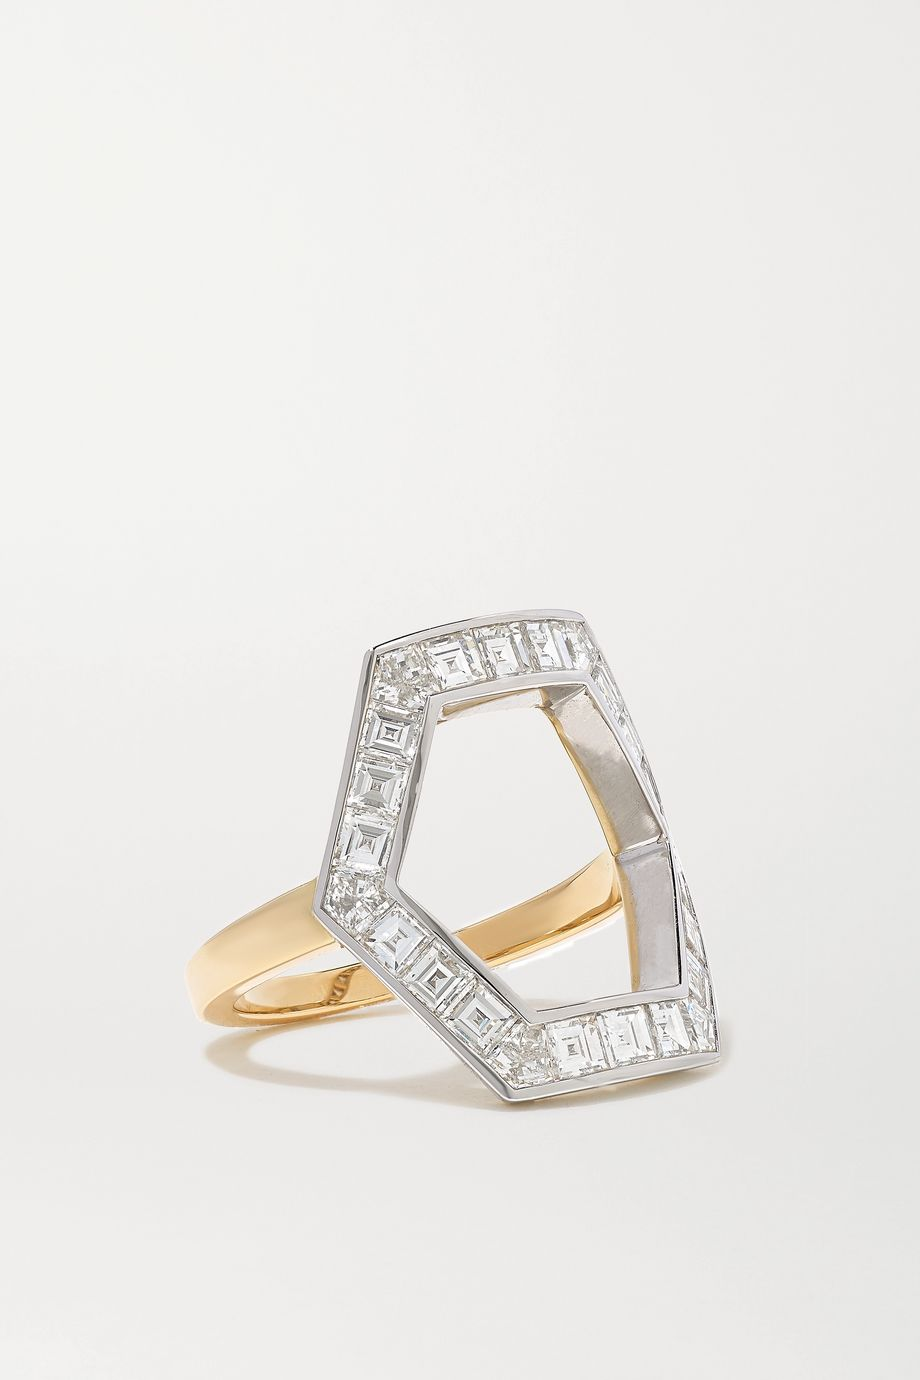 Jessica McCormack Hex 18-karat yellow and blackened white gold diamond ring